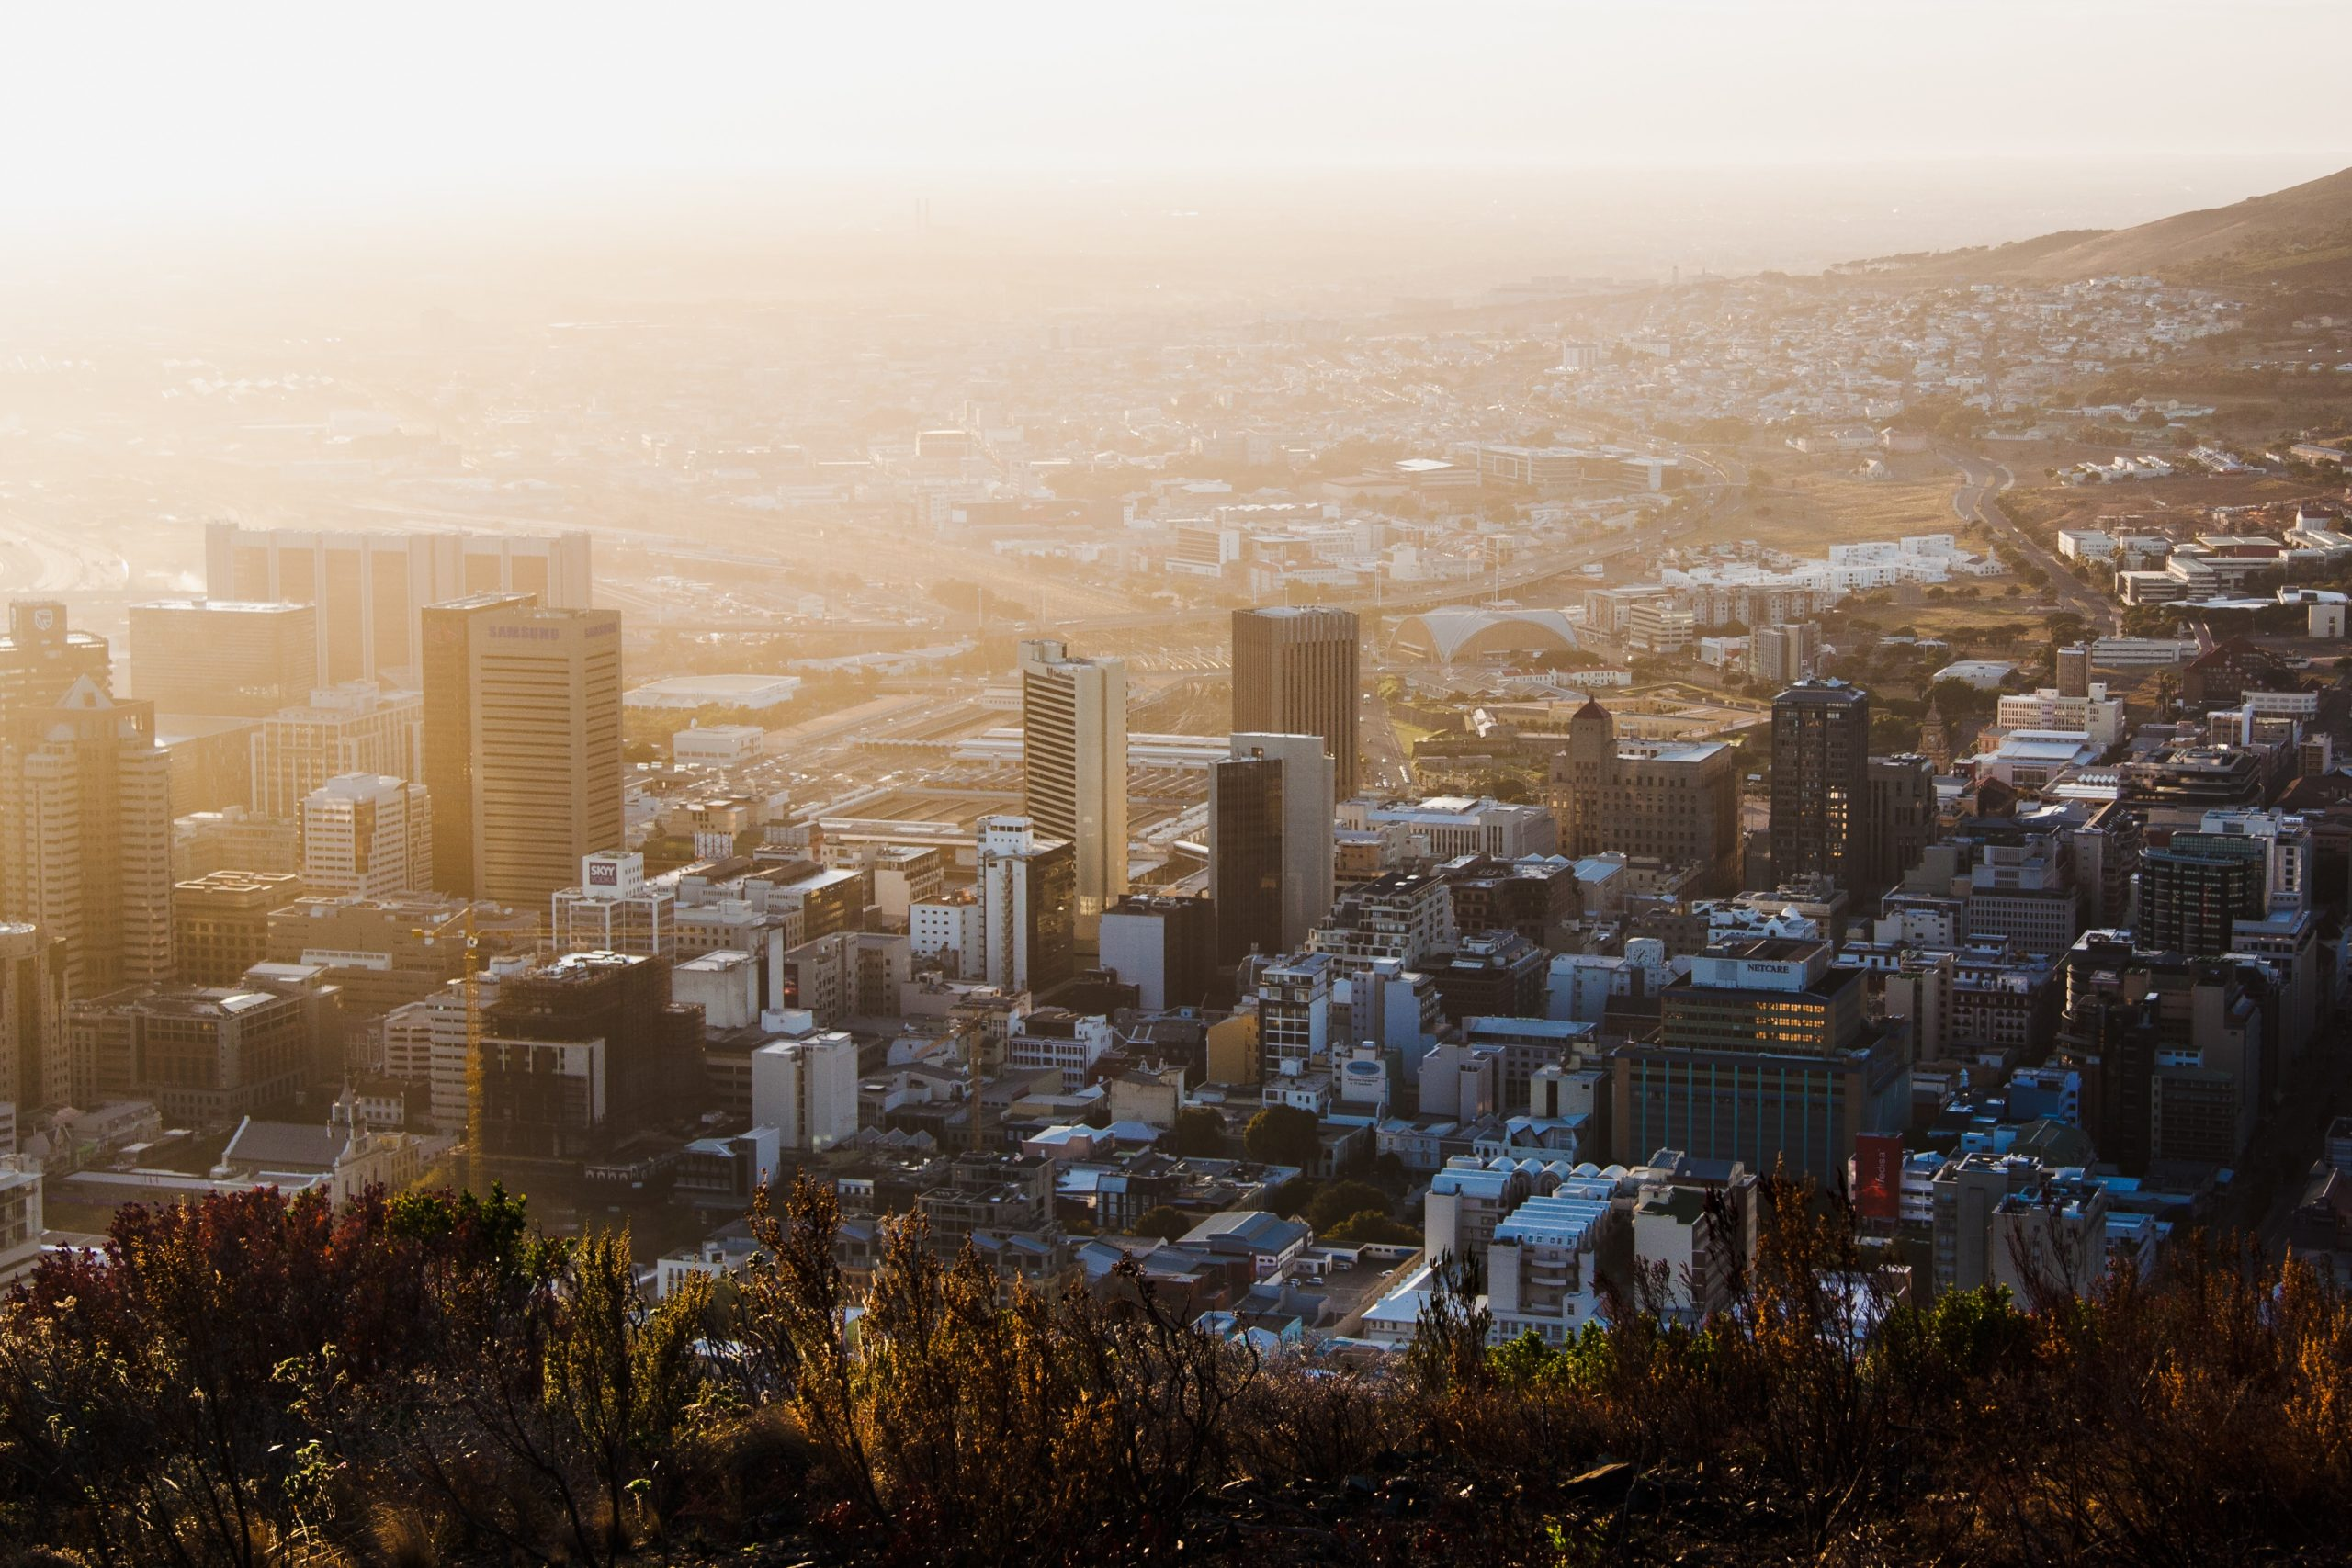 Eskom's financial woes are pressuring energy-intensive industries to tap into new sources (Credit: Tim Johnson / Unsplash)